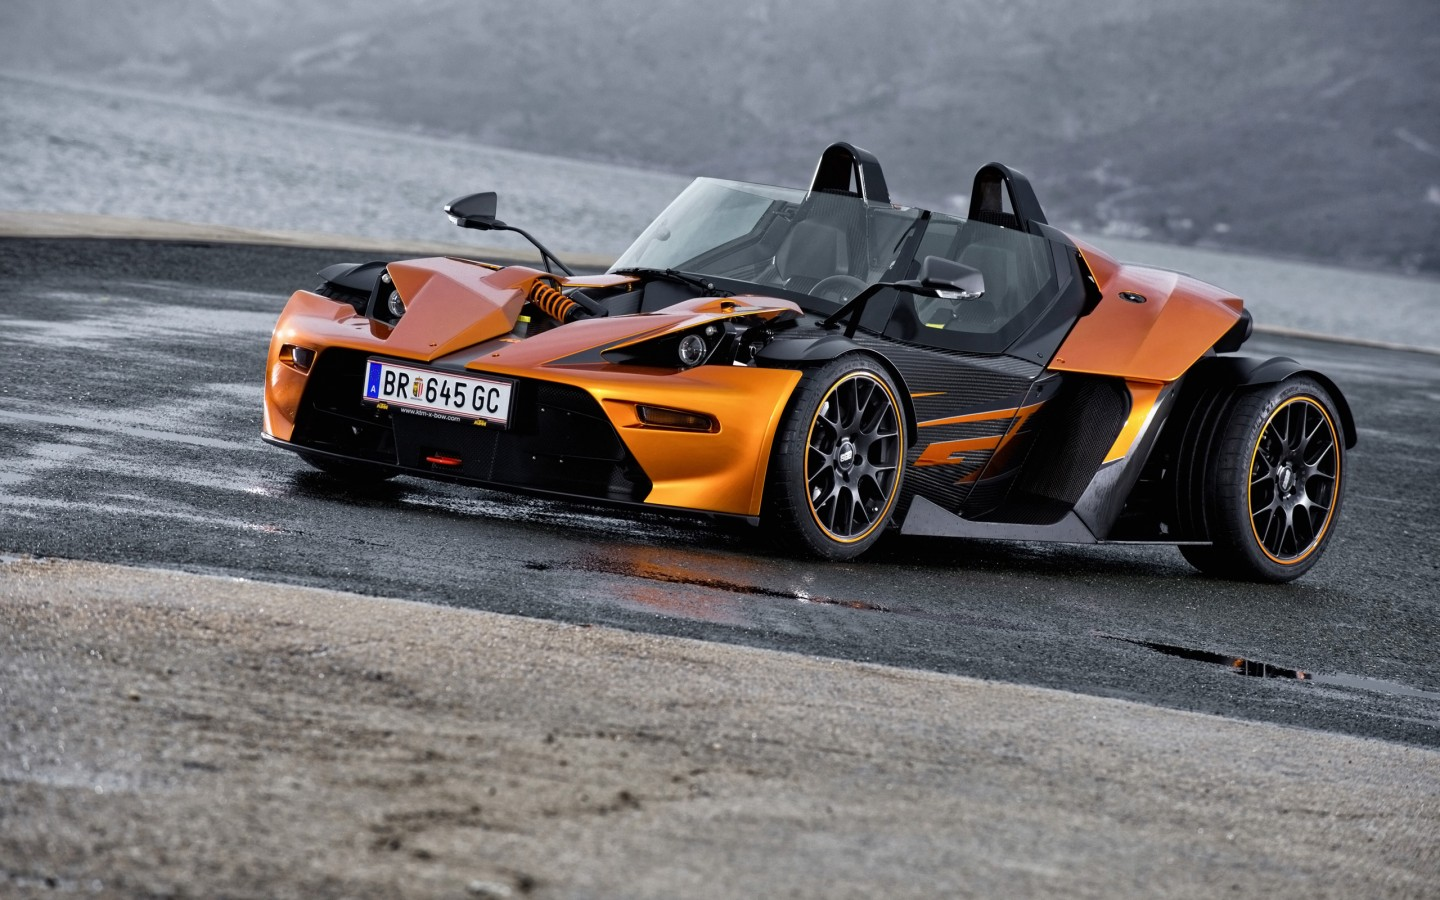 Ktm X Bow >> 2014 KTM X Bow GT Wallpaper | HD Car Wallpapers | ID #4149